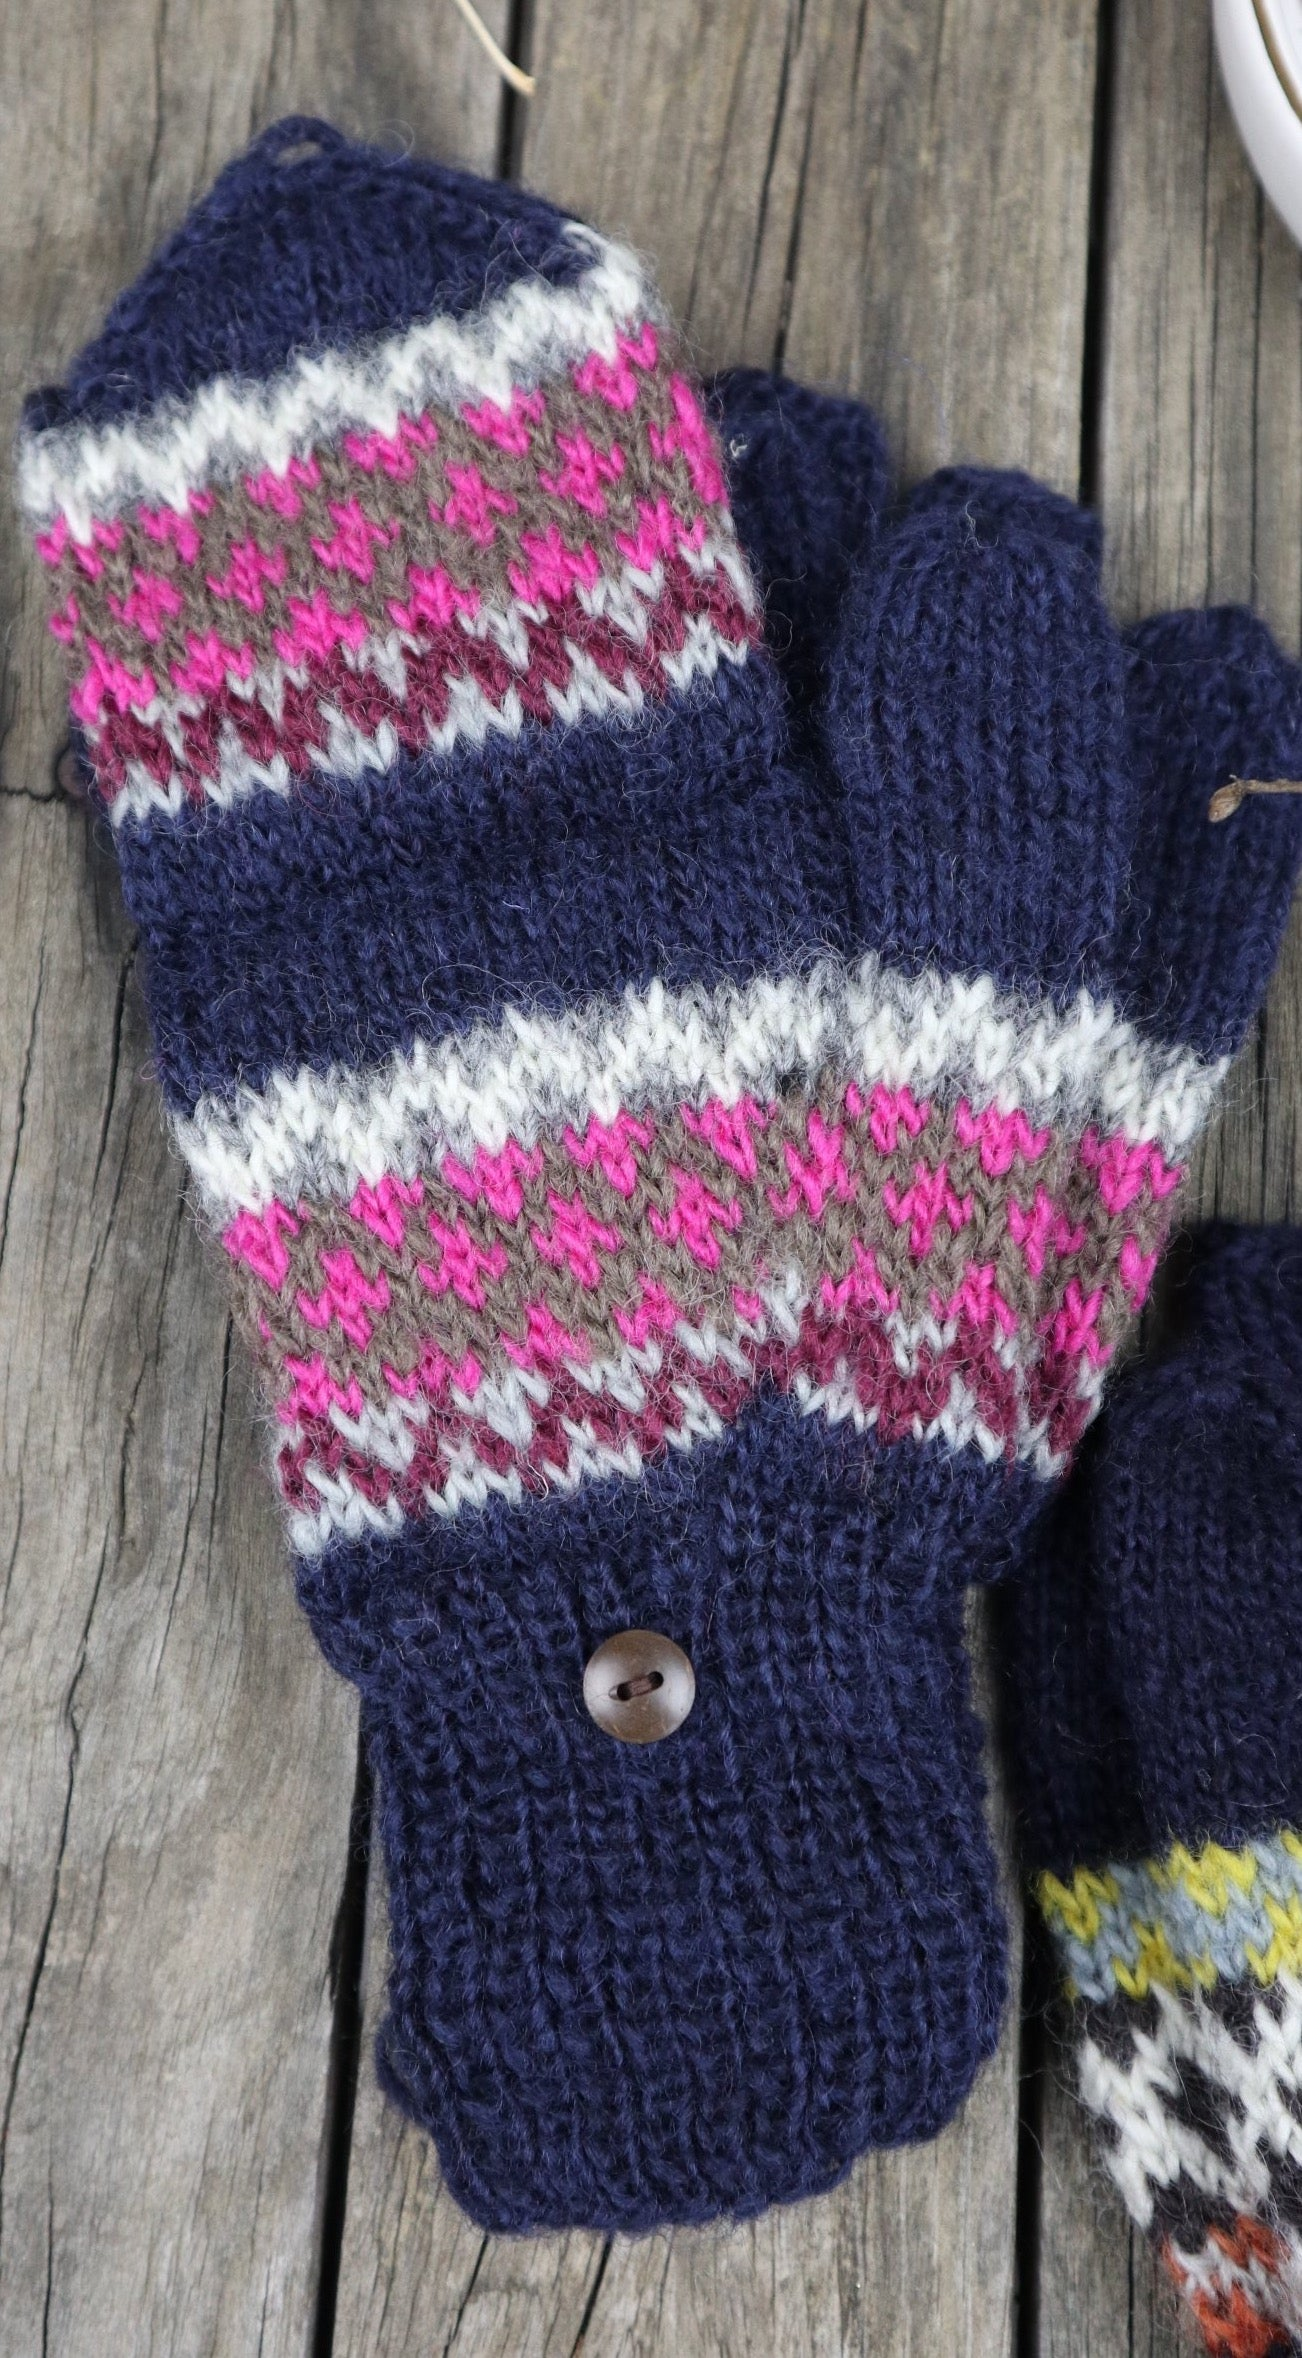 Fair Trade Ethical Adult Fingerless Gloves with Cap Patterned Design Multi Colours